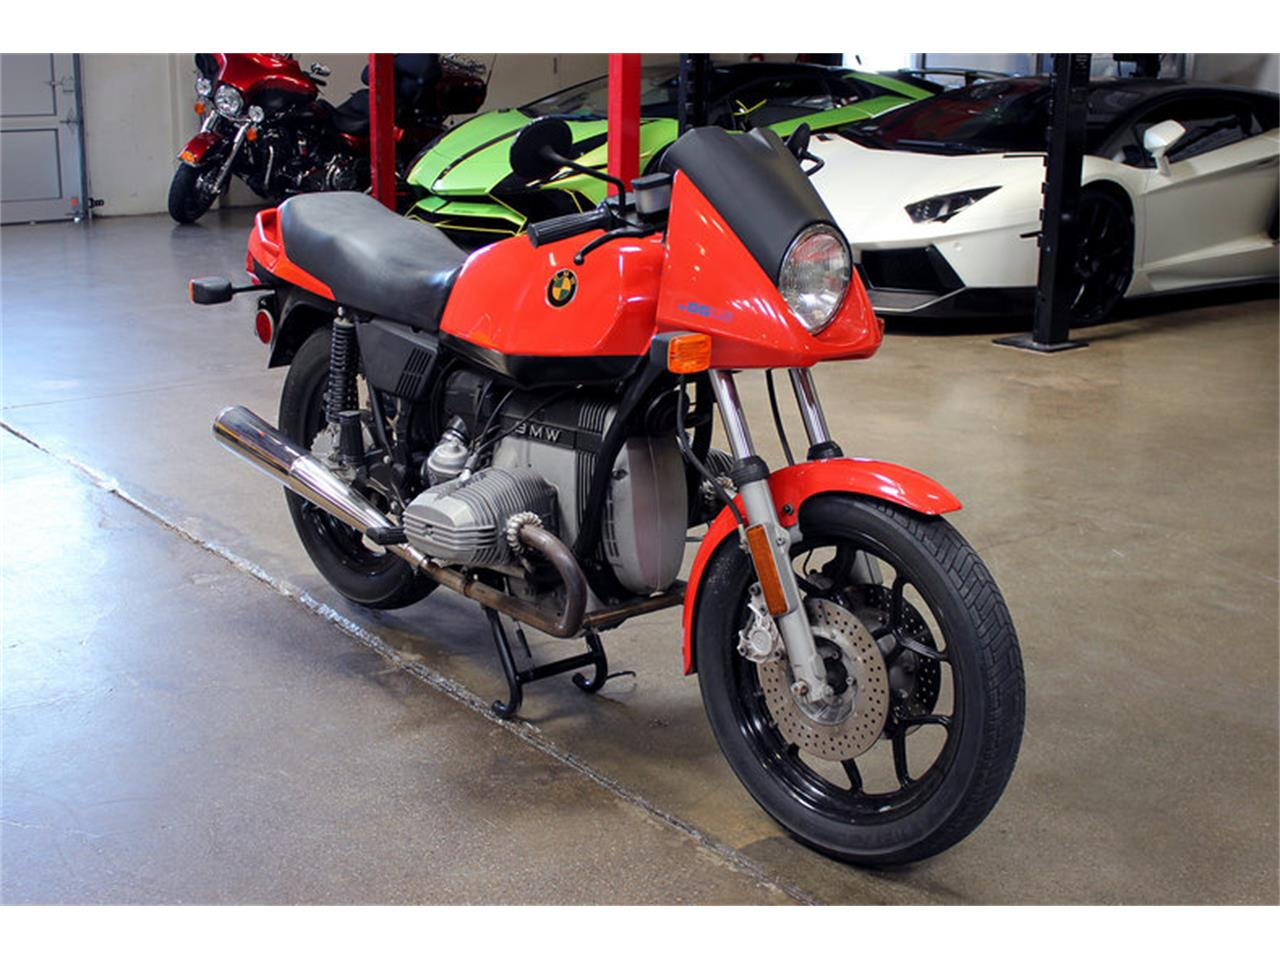 1982 Bmw Motorcycle For Sale Classiccars Com Cc 1082051